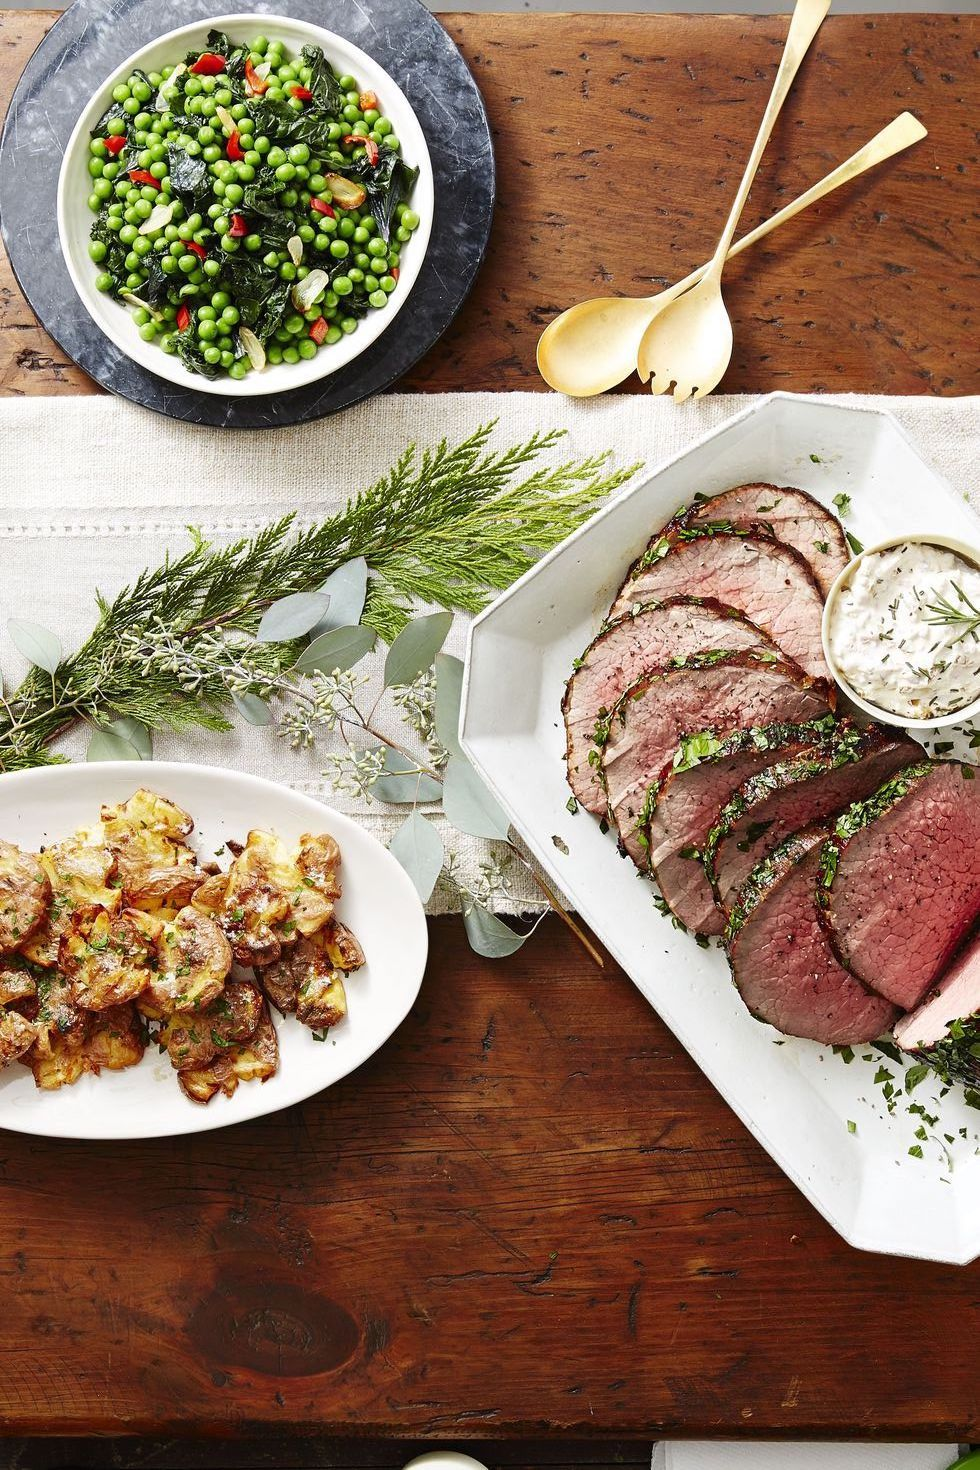 55 Creative Christmas Dinner Ideas That Are Sure to Steal the Show